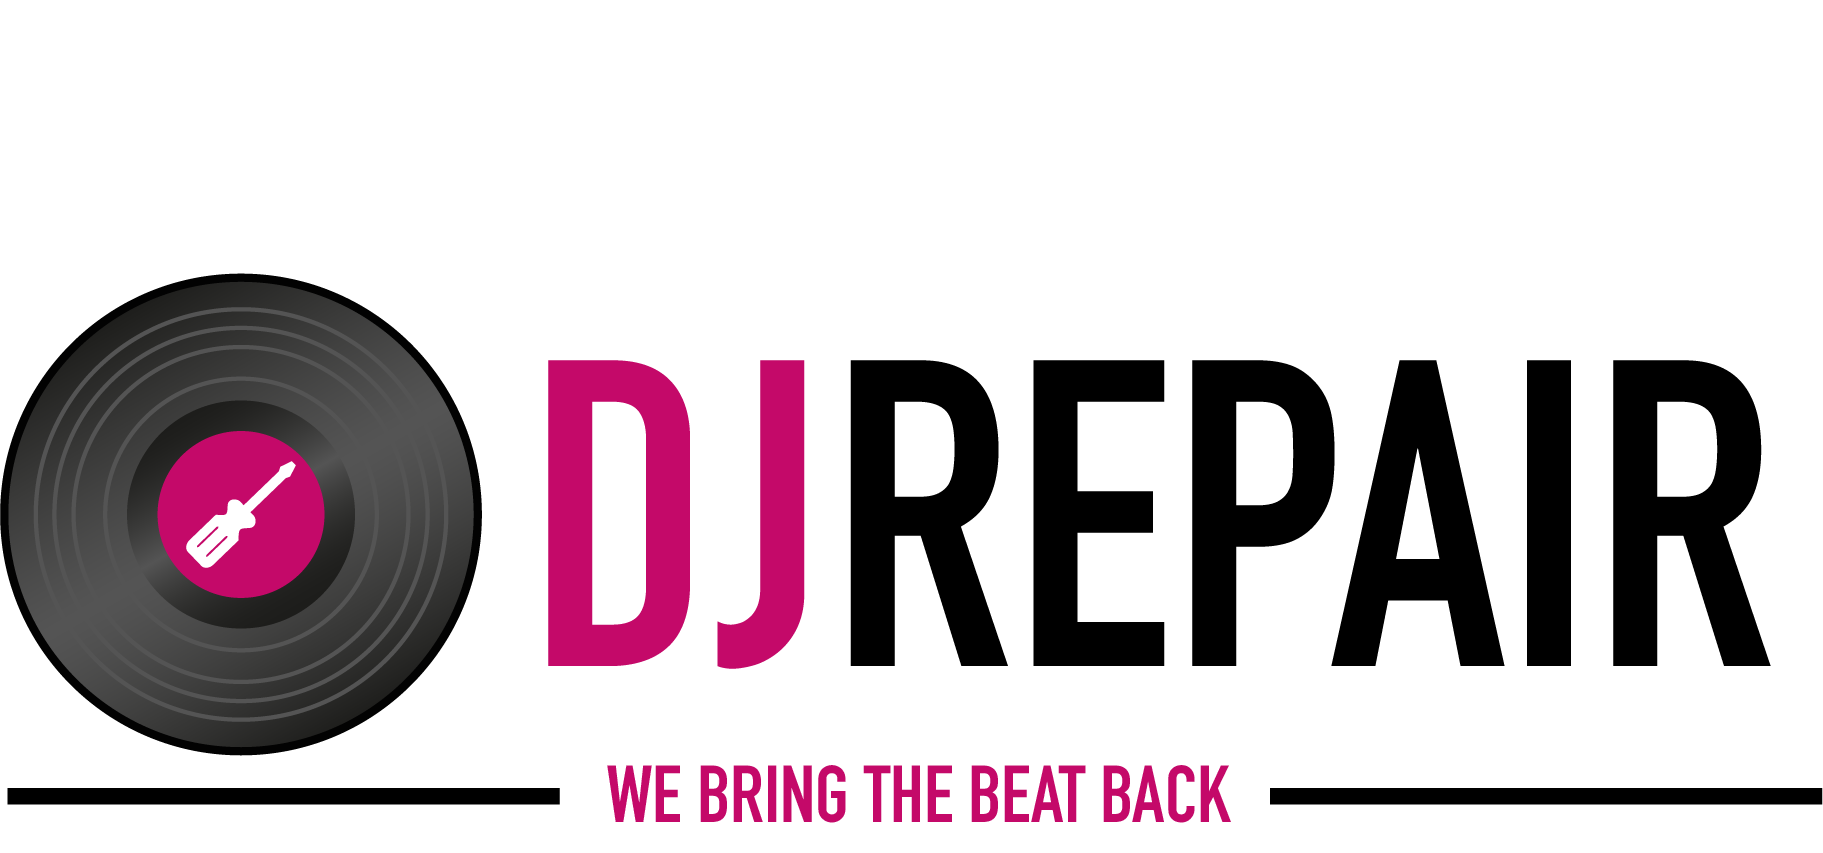 WE BRING THE BEAT BACK